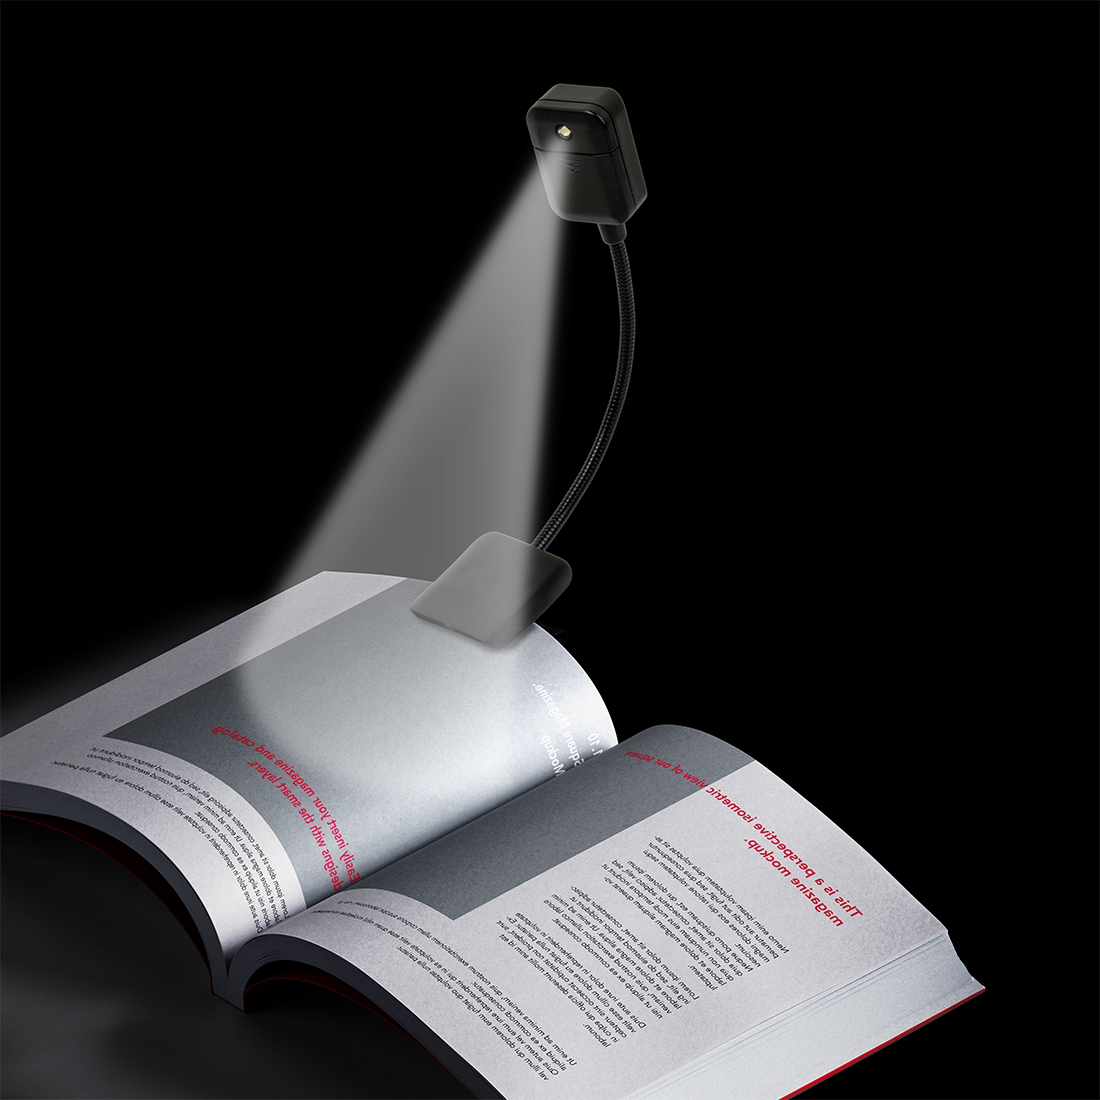 LED Reading Light Ebook Notebook Nightlight  Lamp Flashlight Book Reader For Kindle E-Reader FlashlightLED Reading Light Ebook Notebook Nightlight  Lamp Flashlight Book Reader For Kindle E-Reader Flashlight